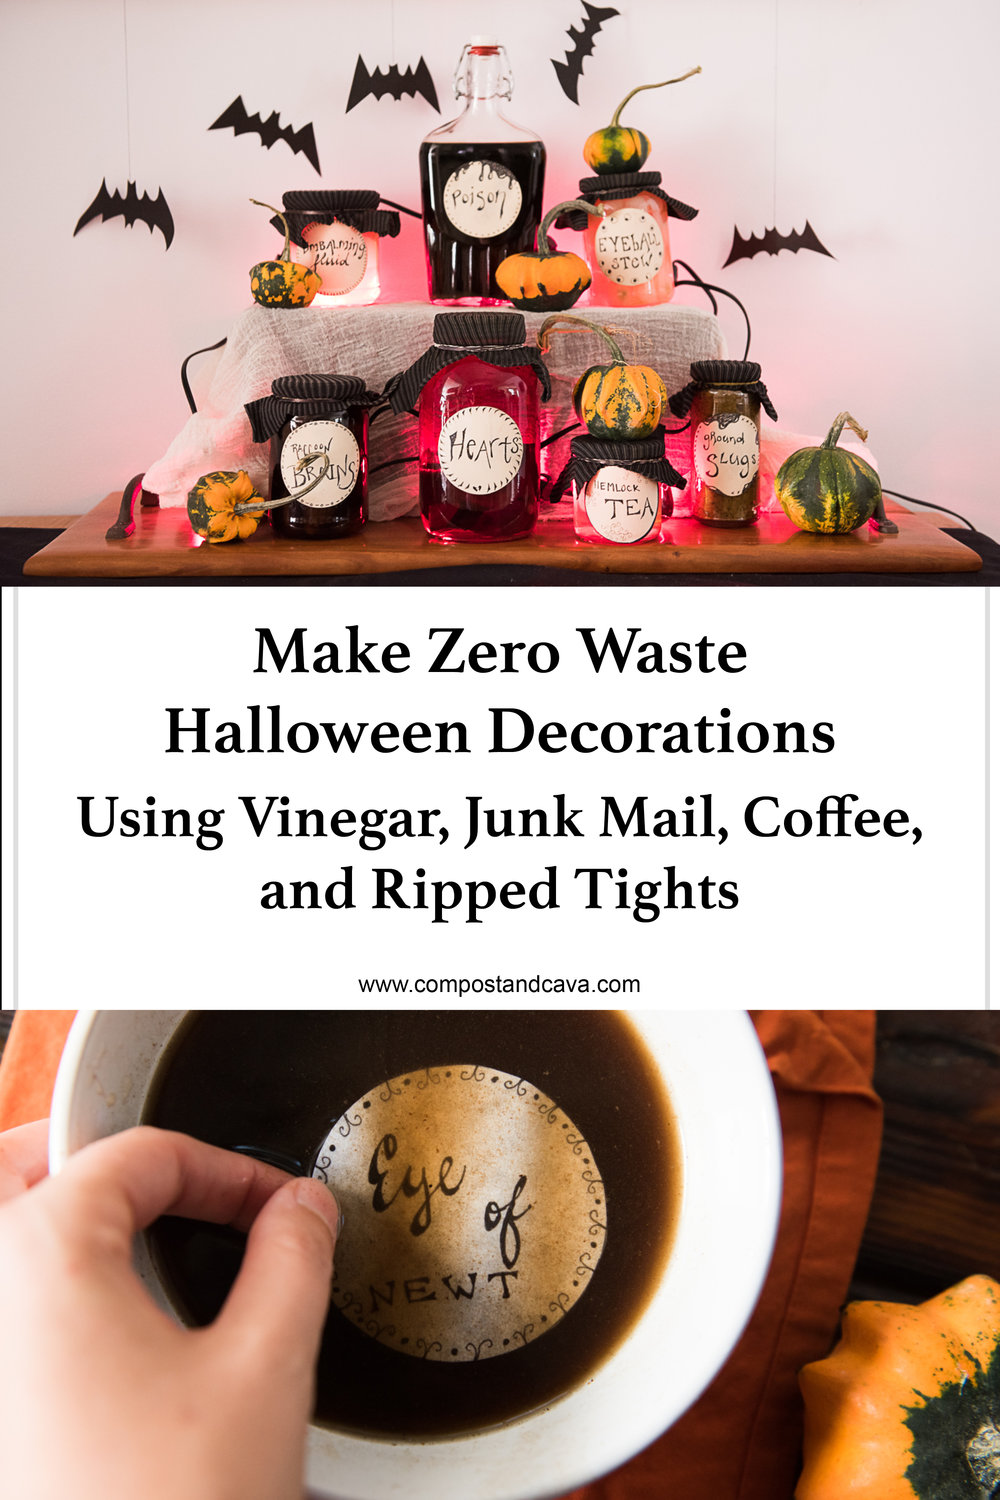 zero waste halloween decorations using vinegar, junk mail, coffee, and ripped tights